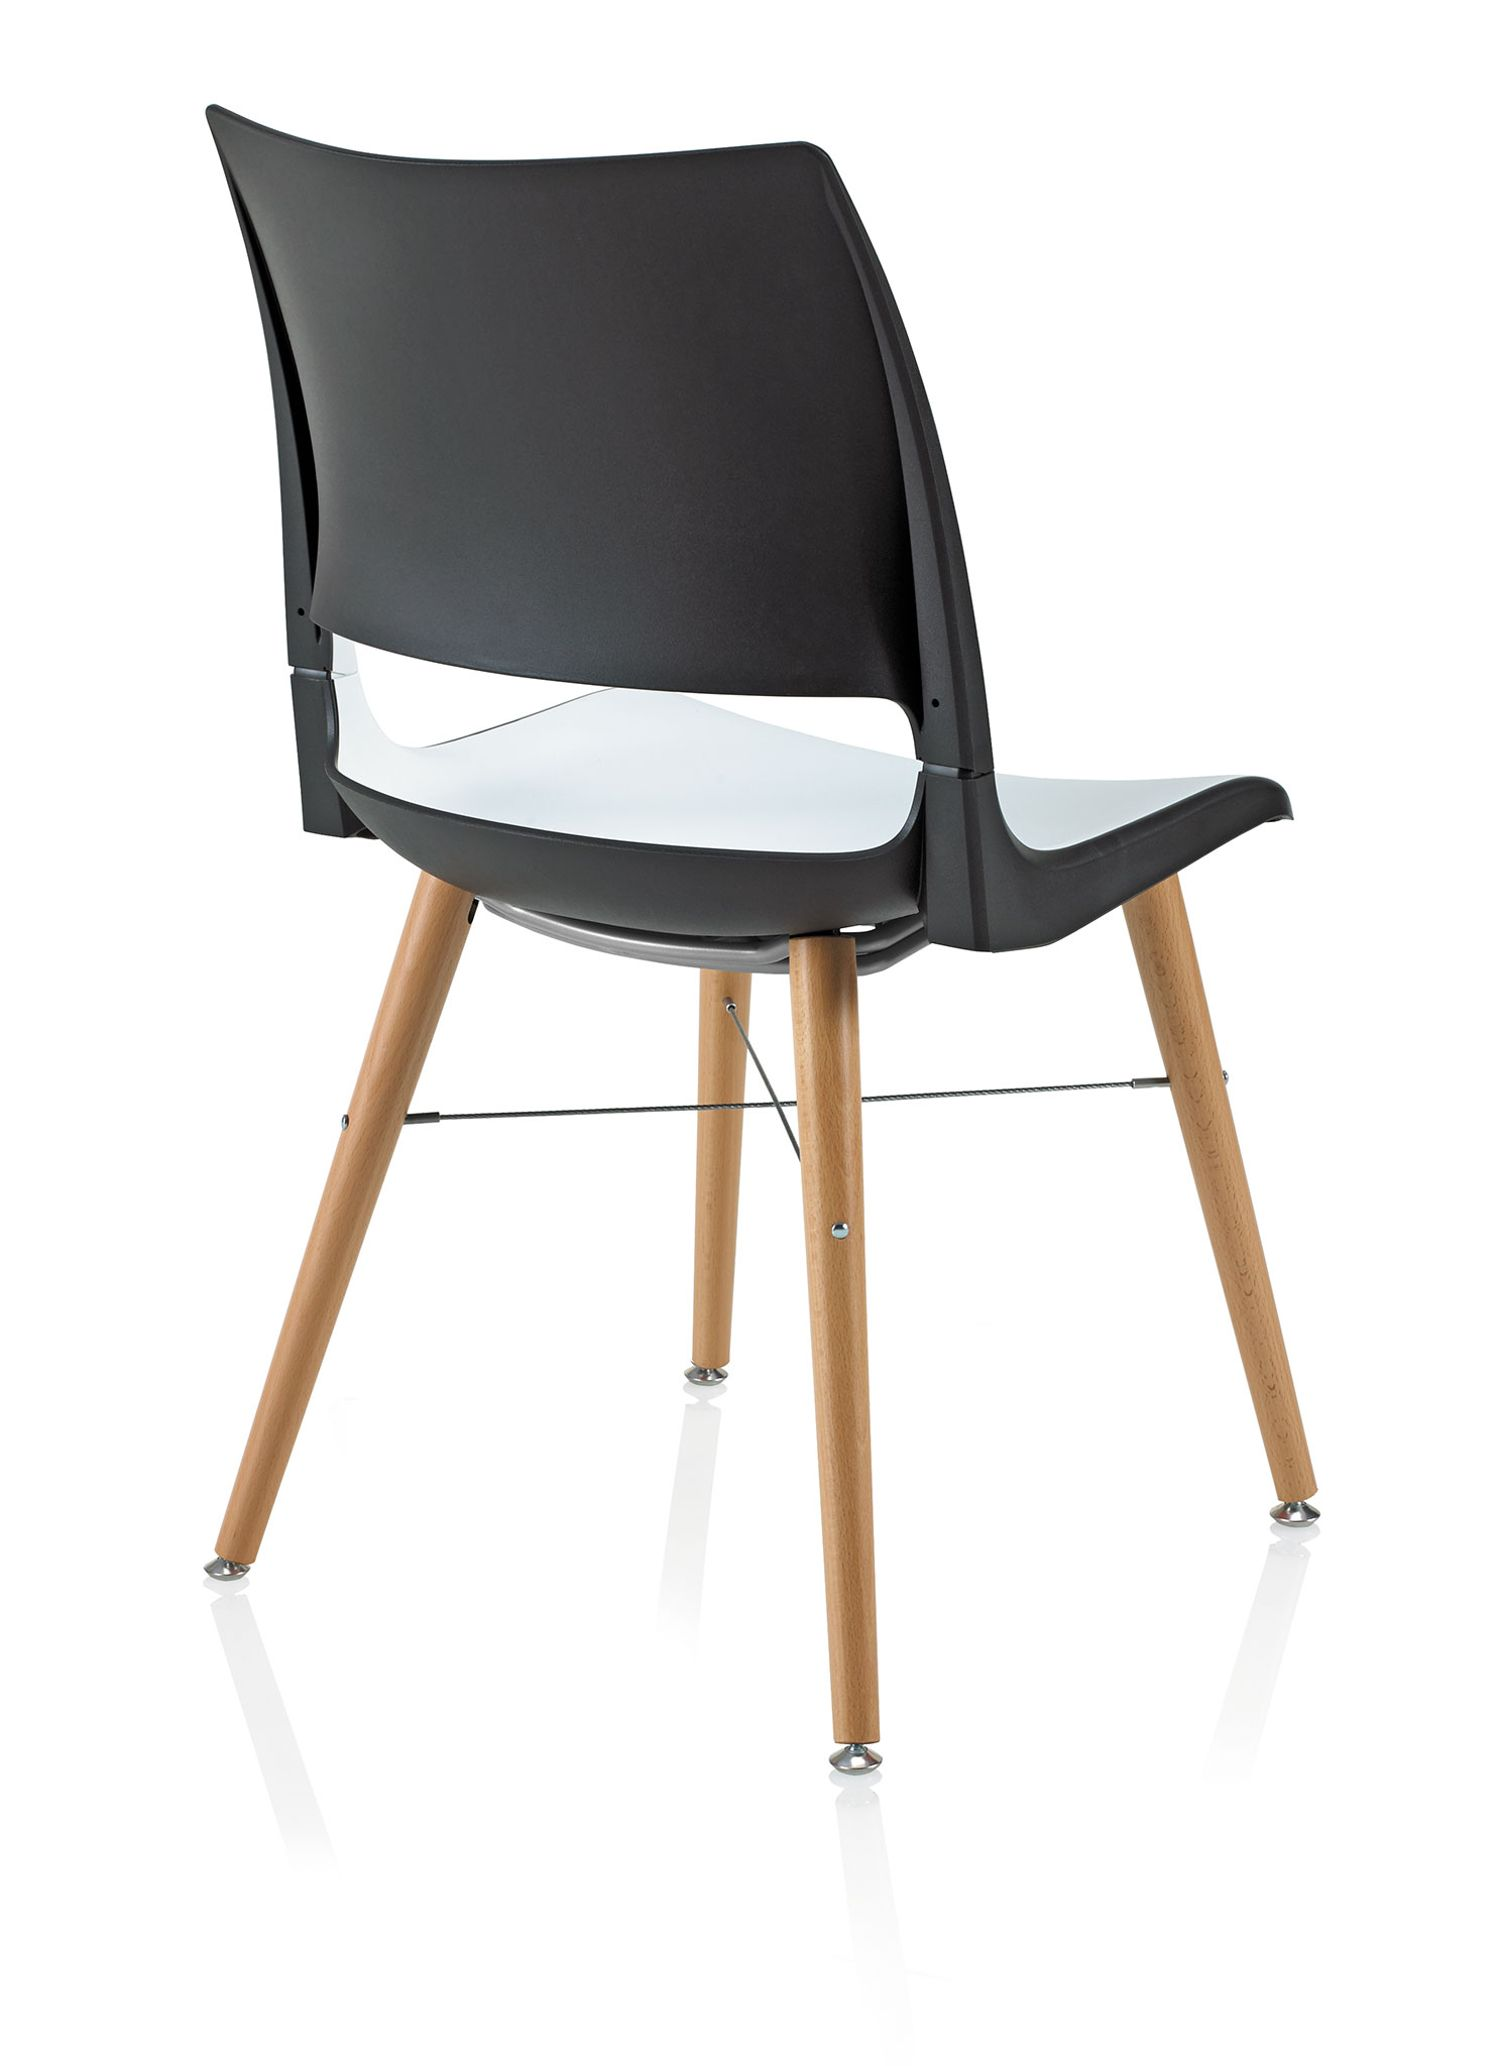 doni chair back view